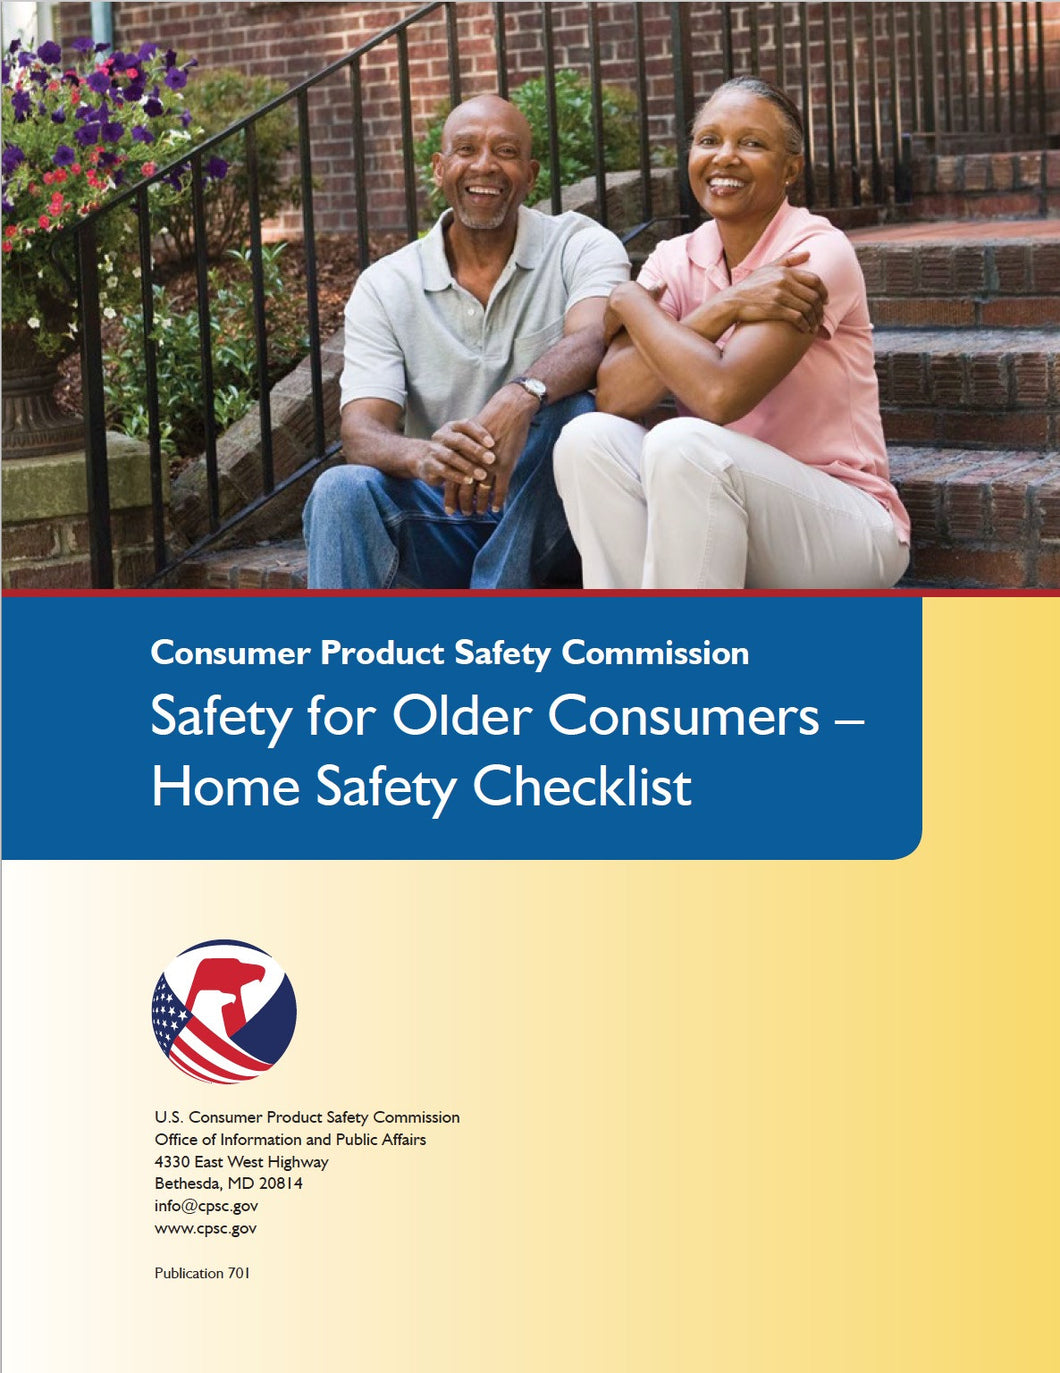 Safety for Older Consumers - Home Safety Checklist